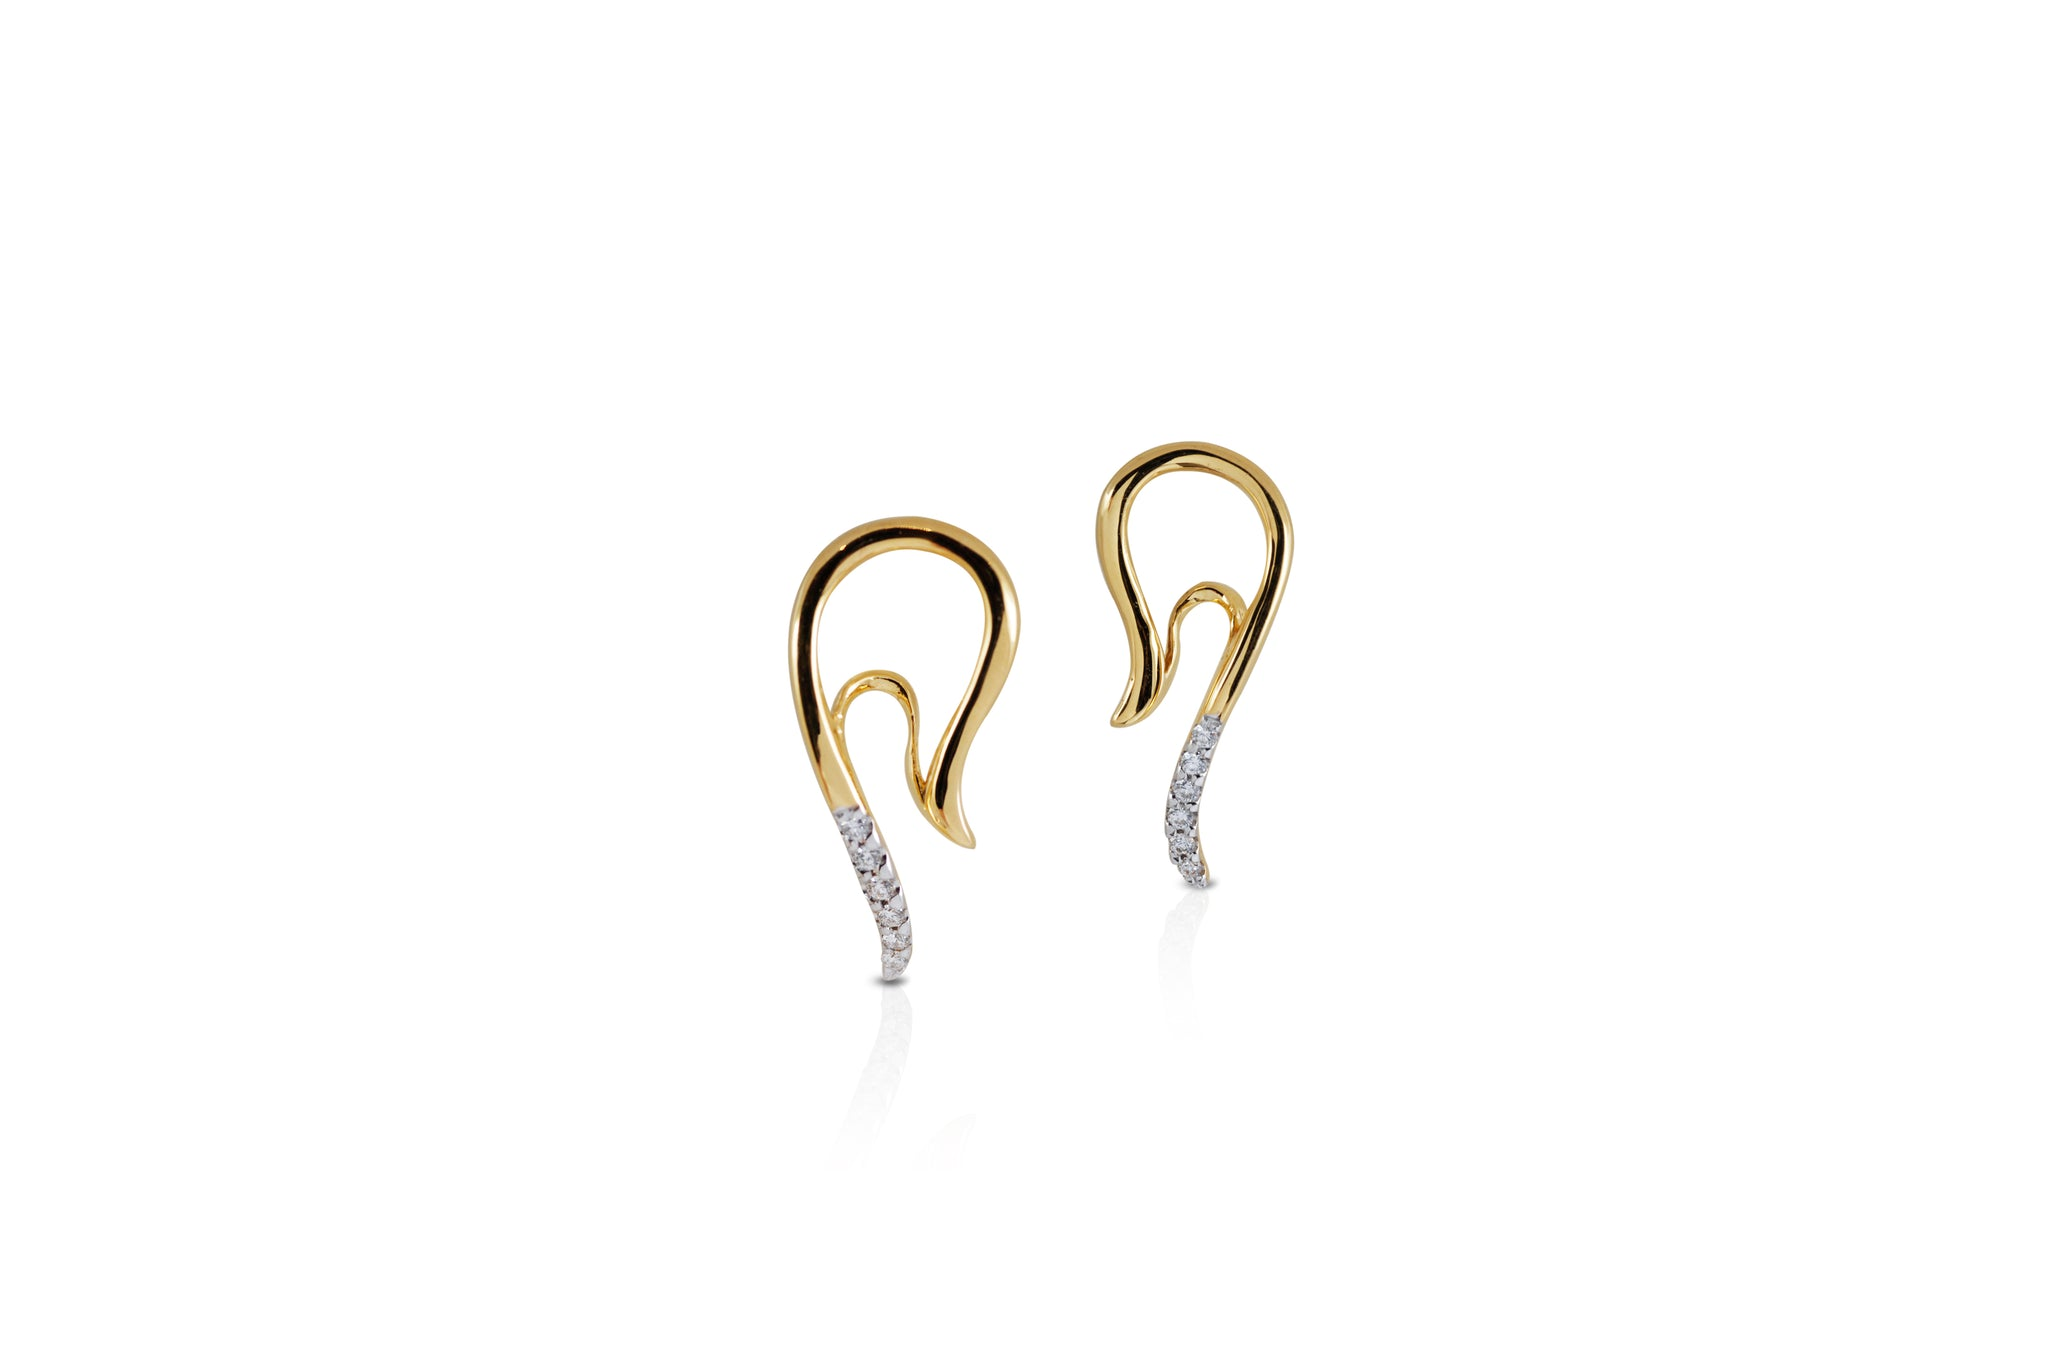 Talay Mini Wave Silhouette Diamond Earrings